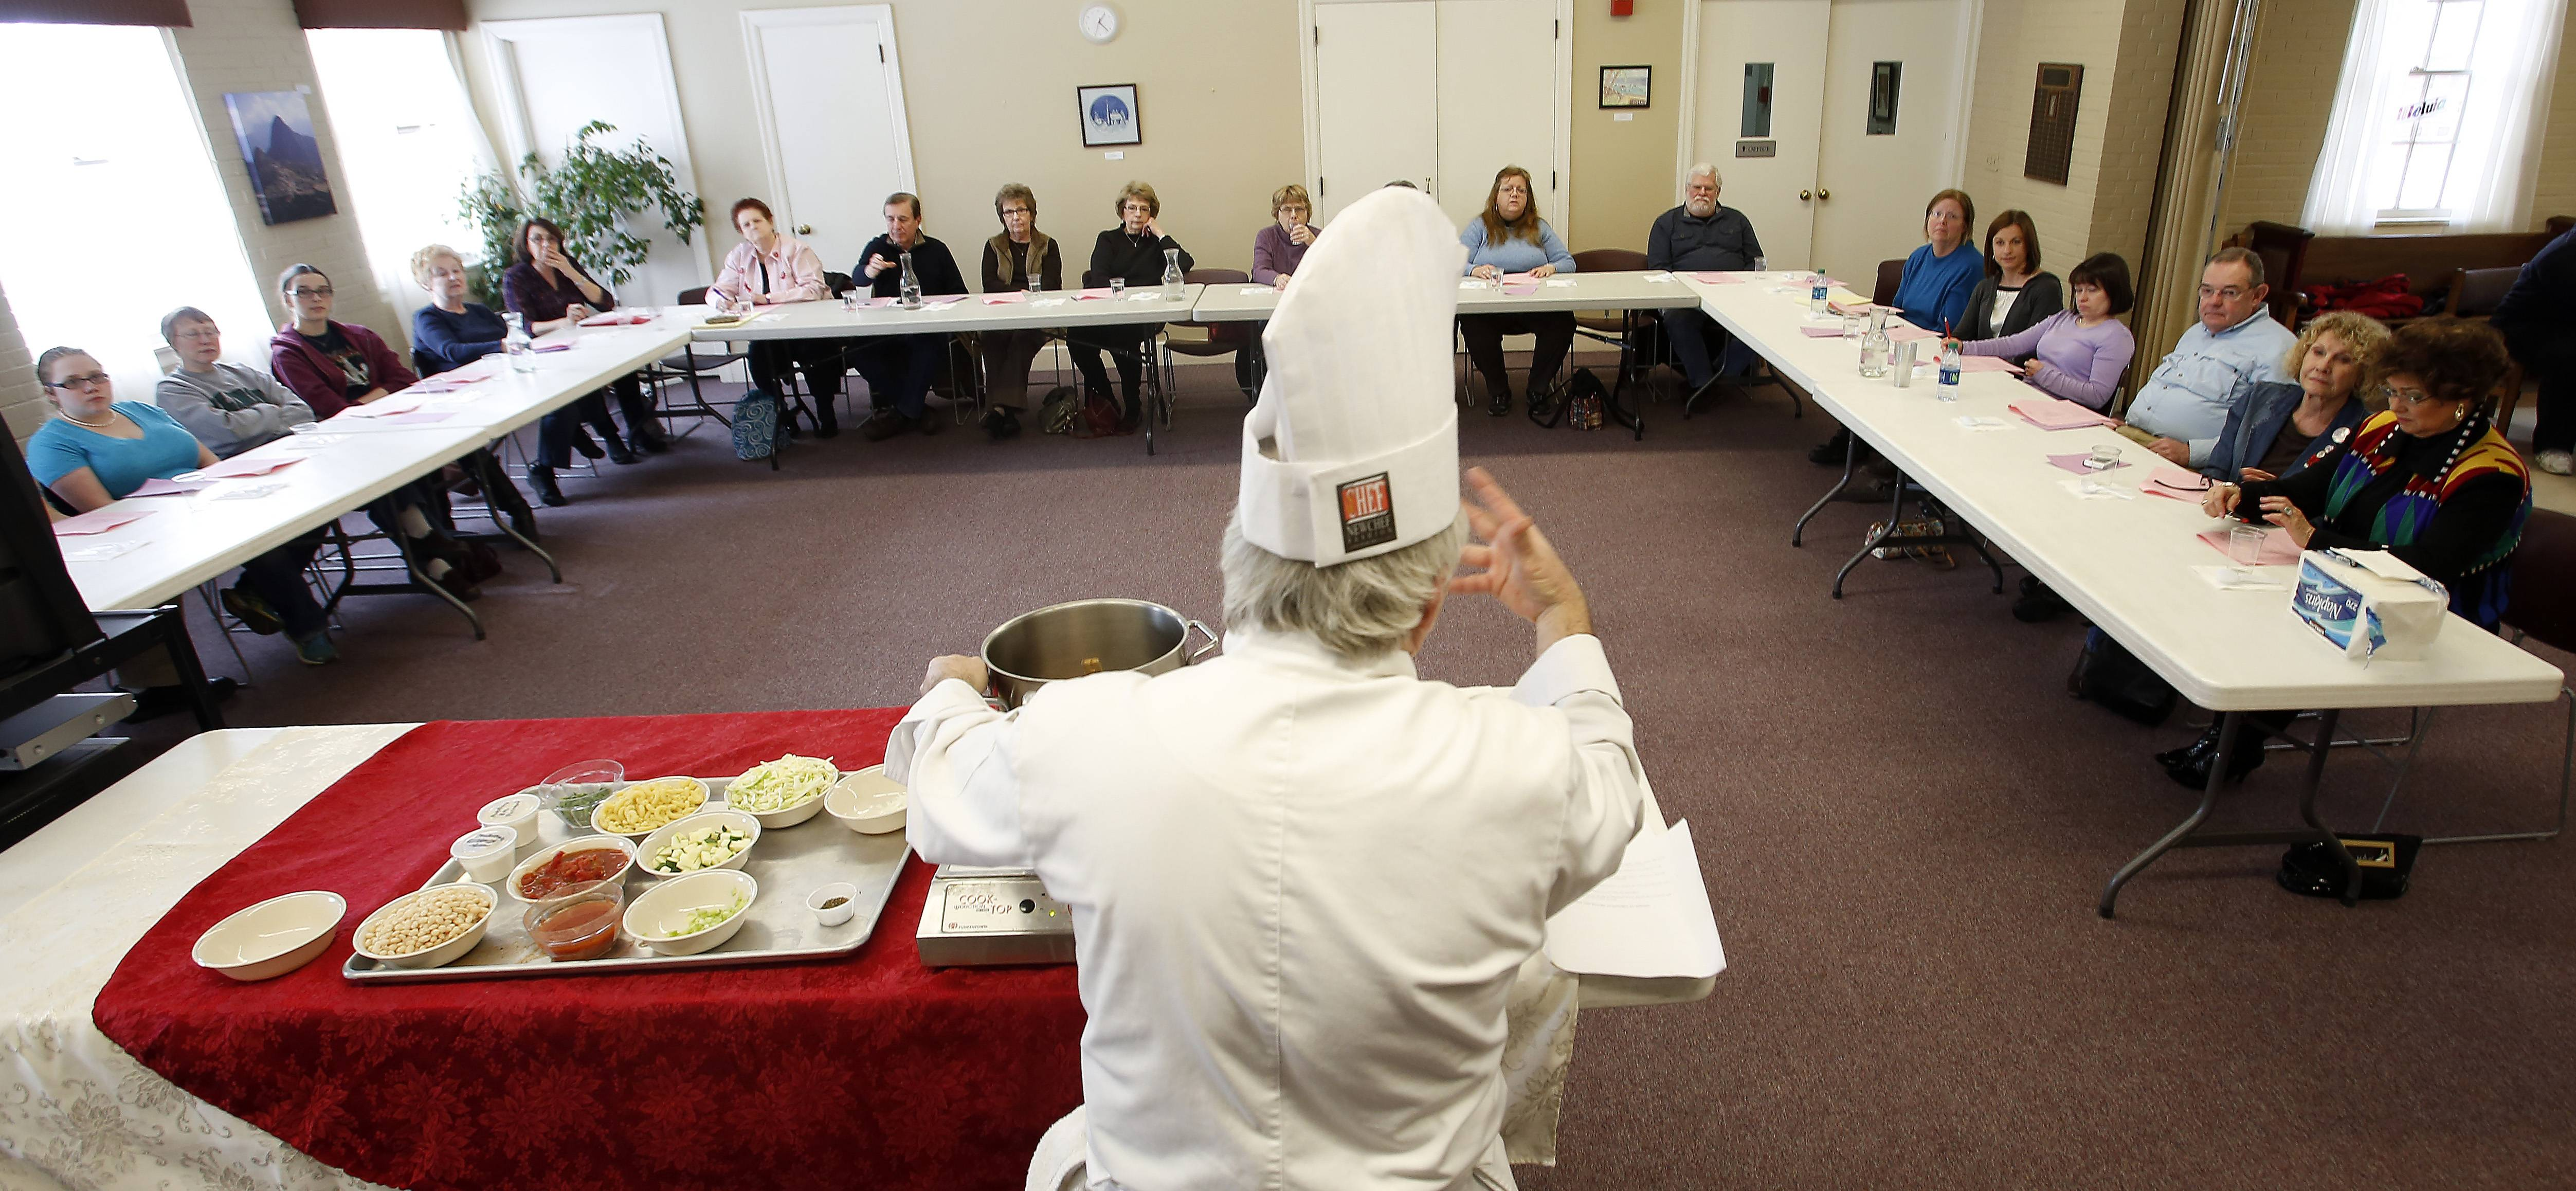 Chef Mike Zema of the St. Charles Episcopal Church teaches a cooking class Saturday on Soul Warming Soups.